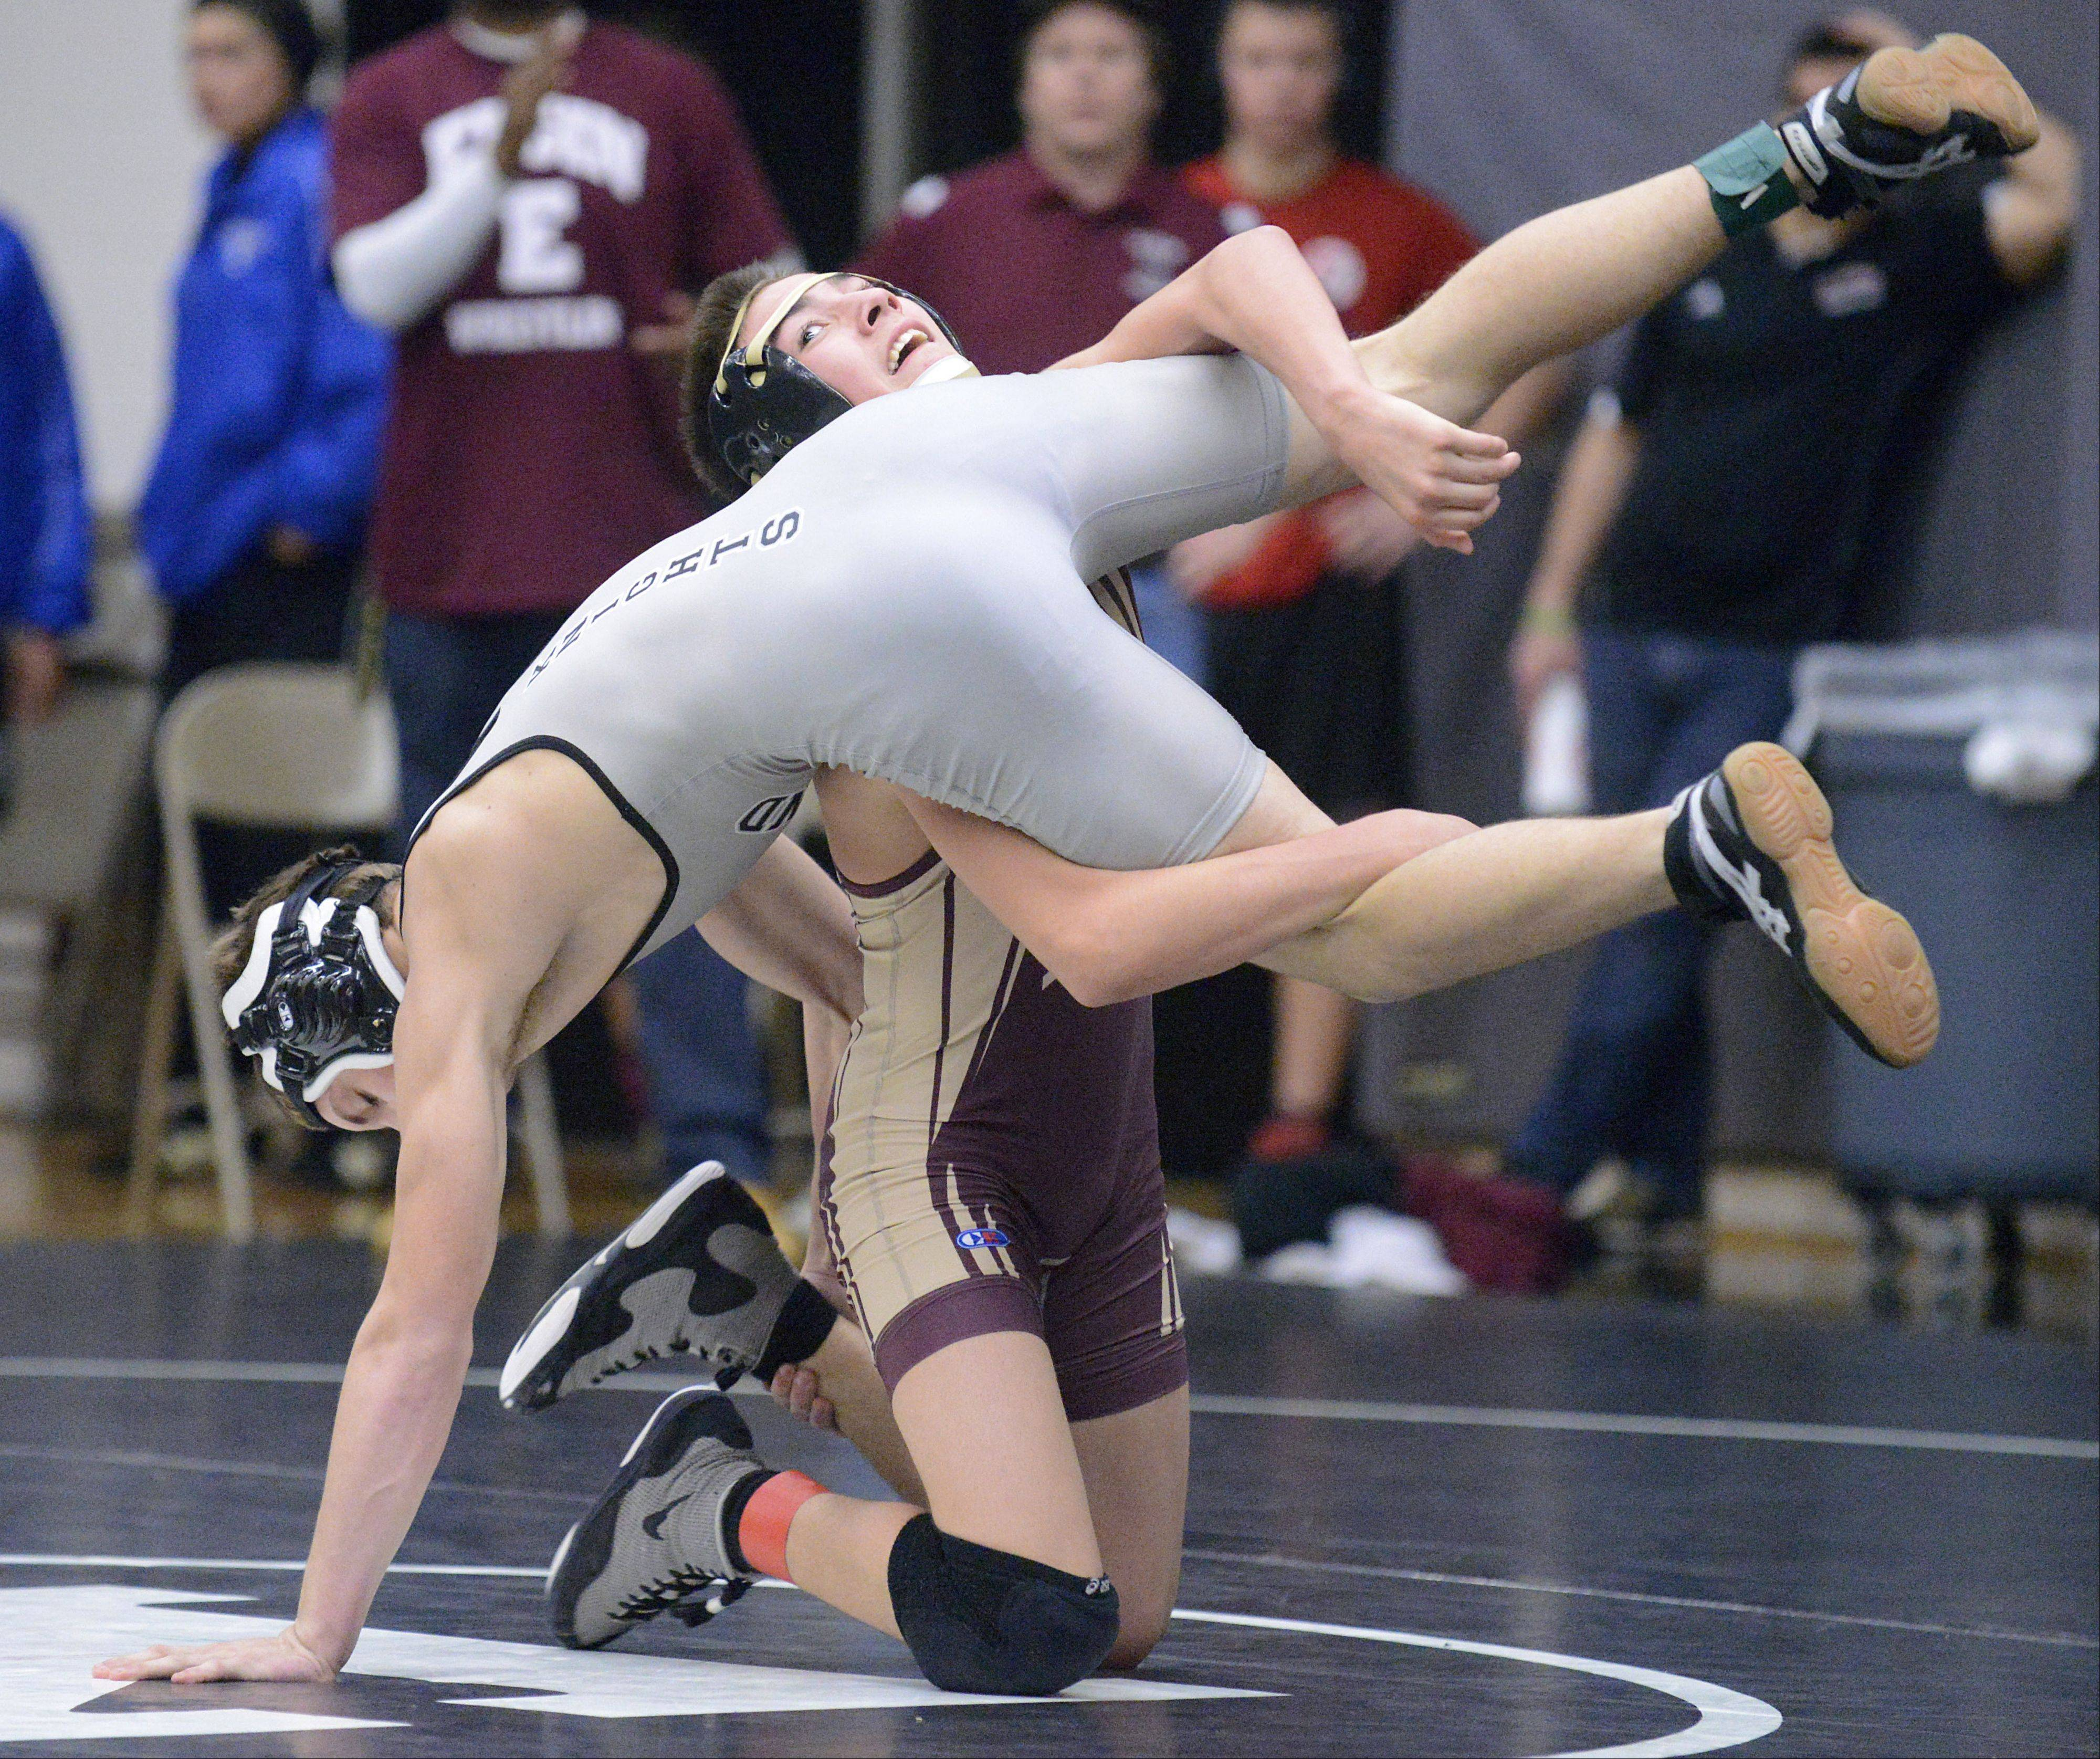 Kaneland's Dane Goodenough and Elgin's Tyler VonEssen in the 126 pound match on Saturday, January 12.